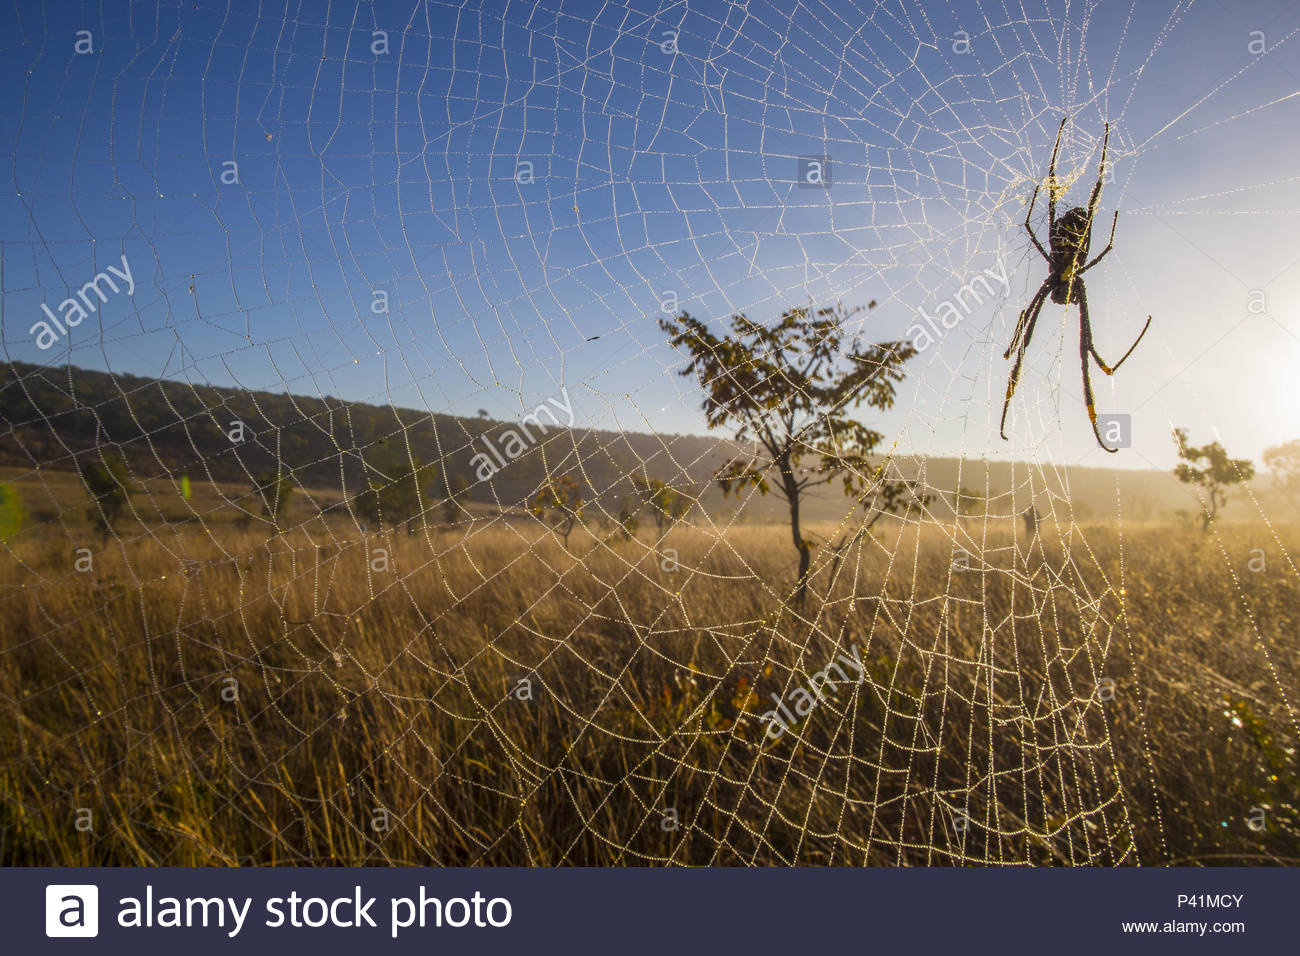 A spider on web in Angola. - Stock Image